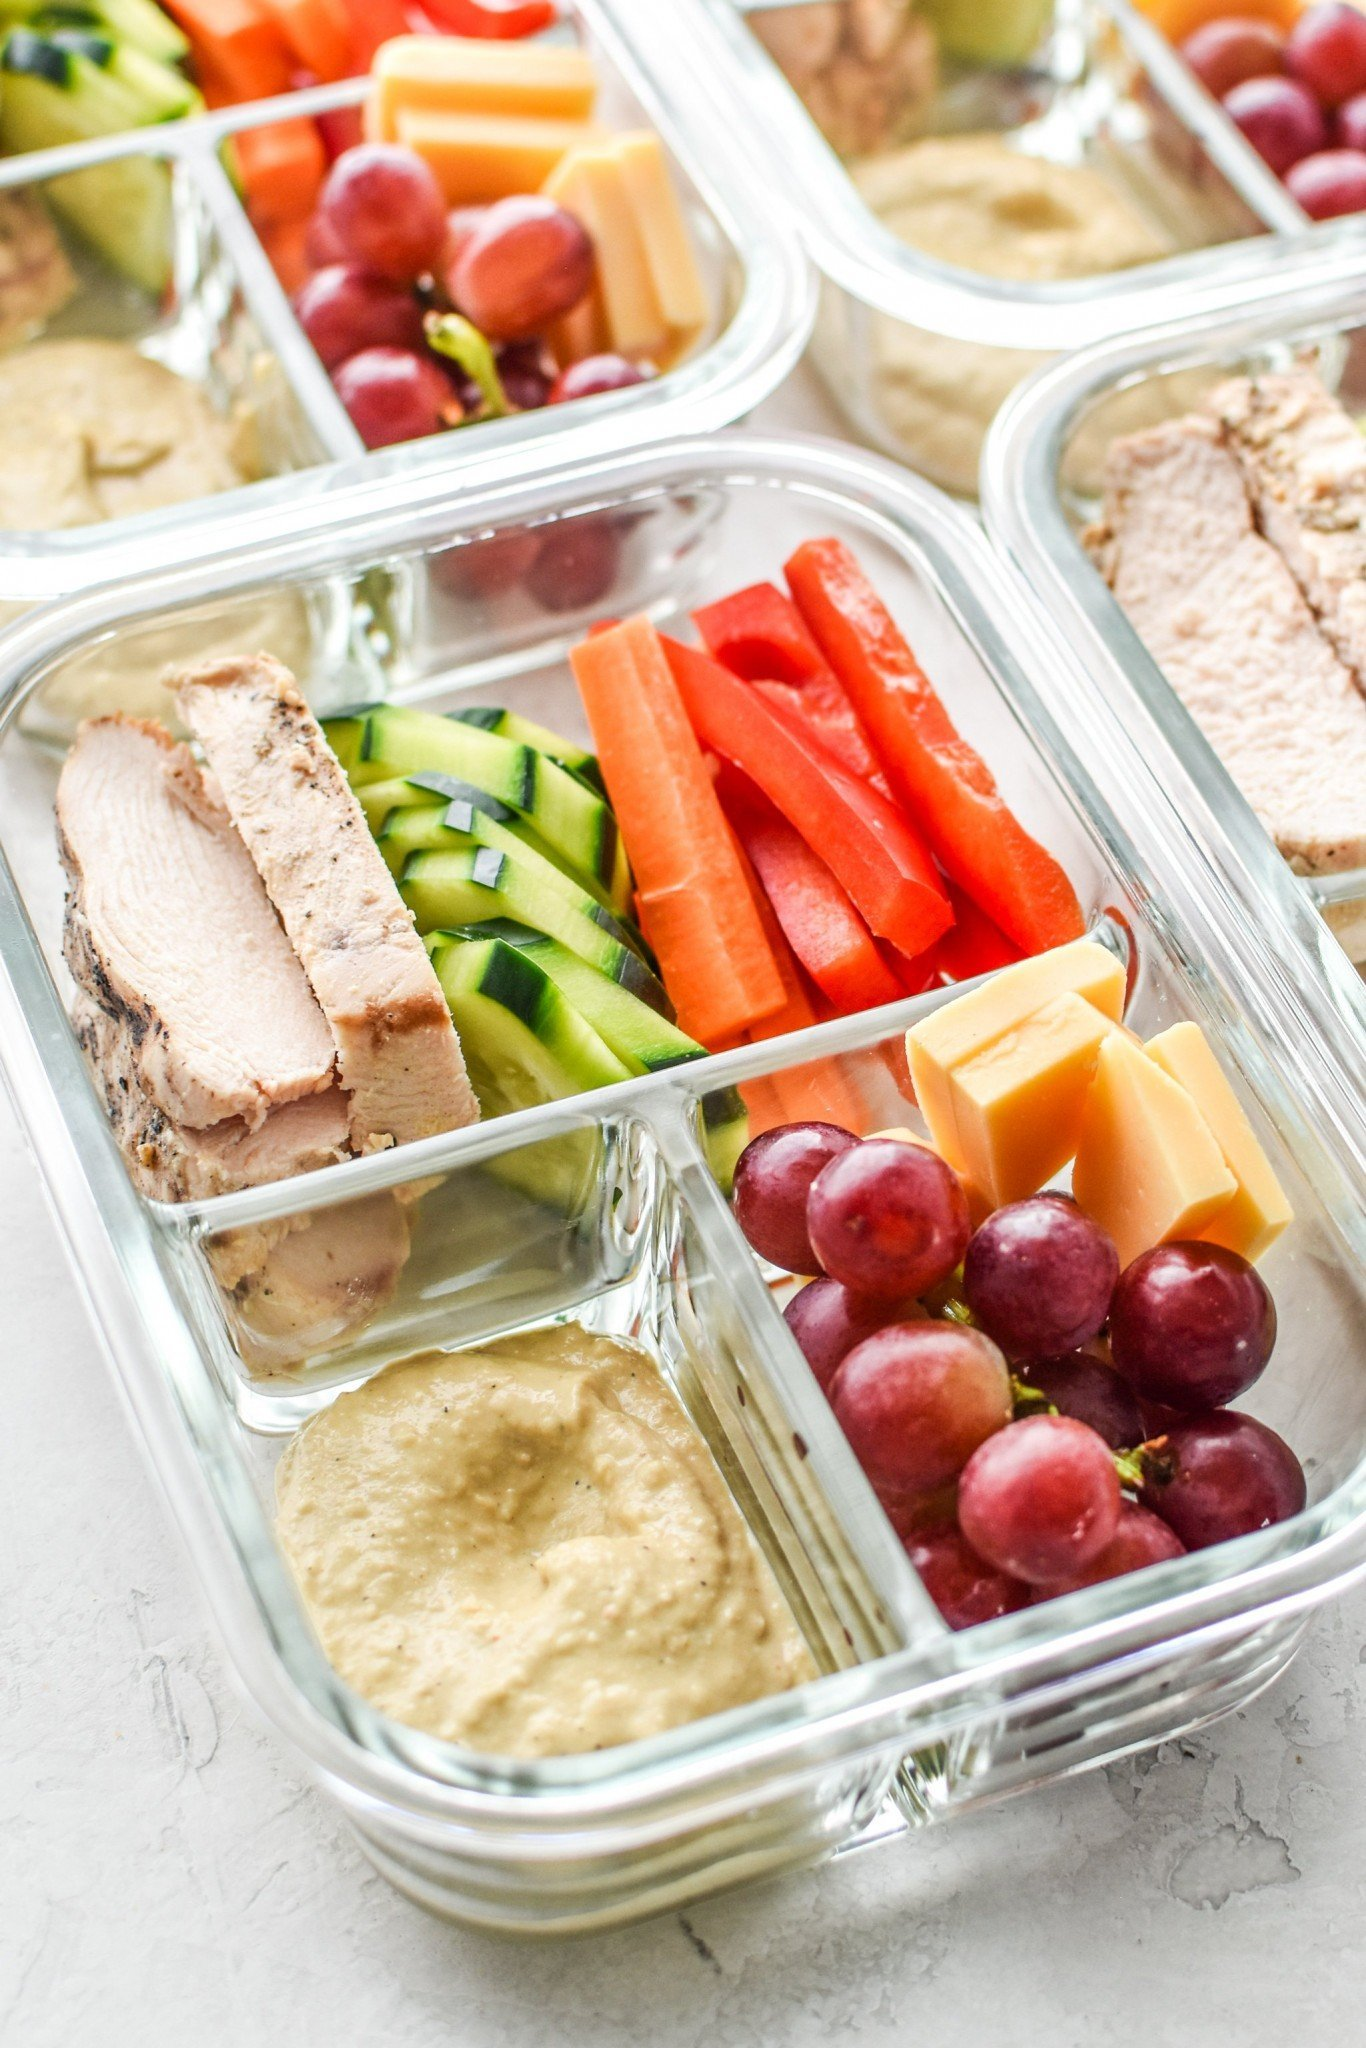 Chicken and veggies with hummus in lunch boxes.